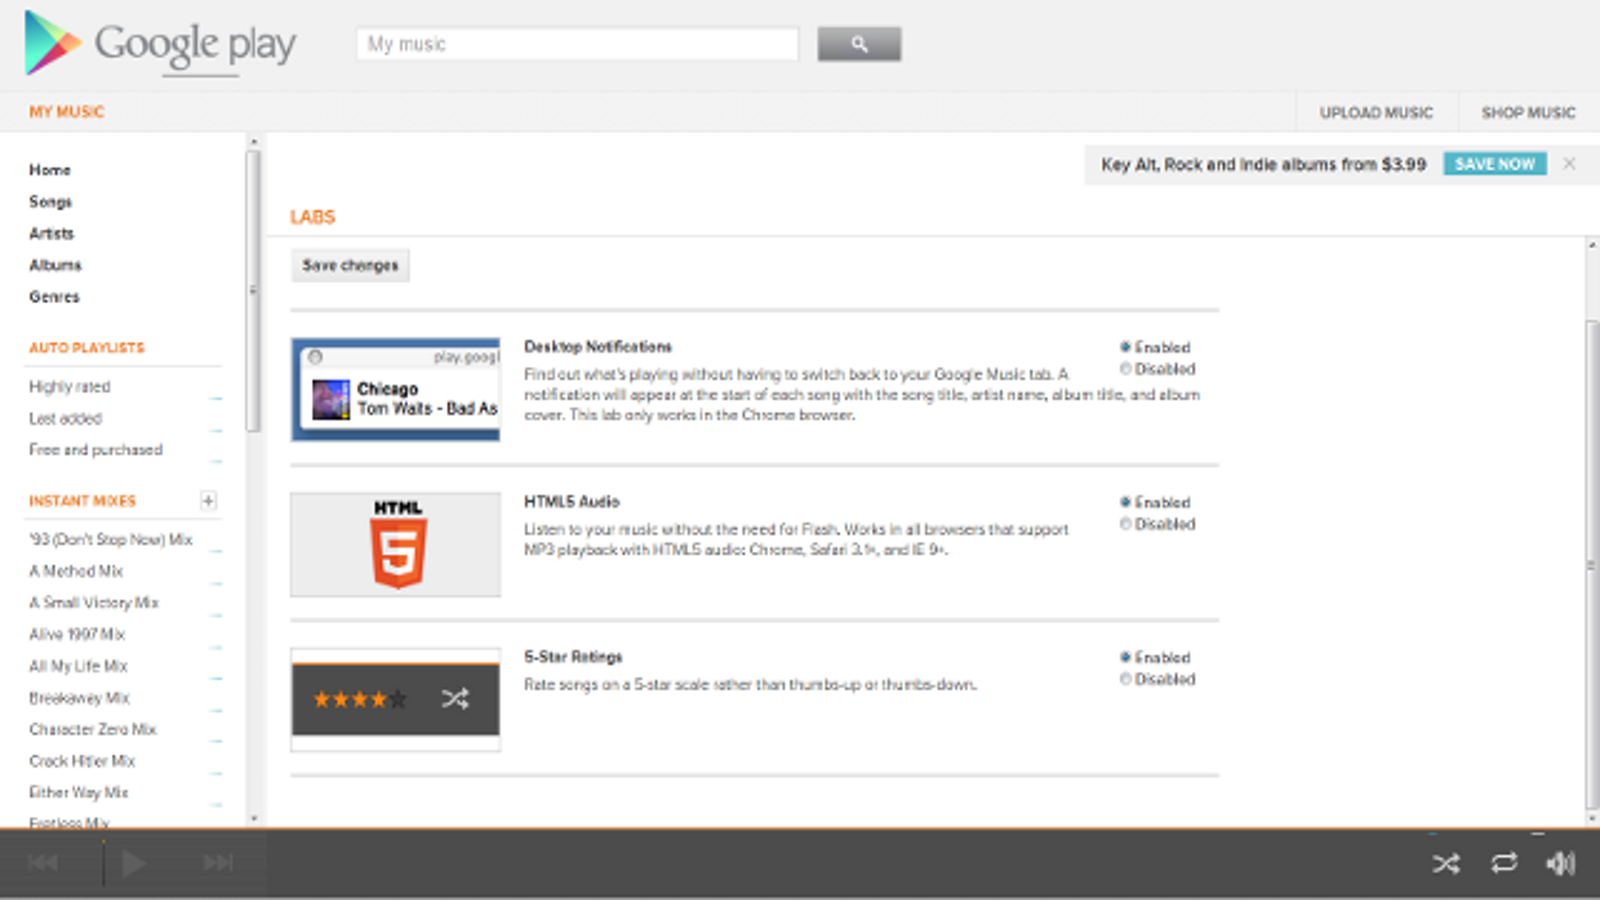 Enable Desktop Notifications, HTML5 Audio, and Five Star